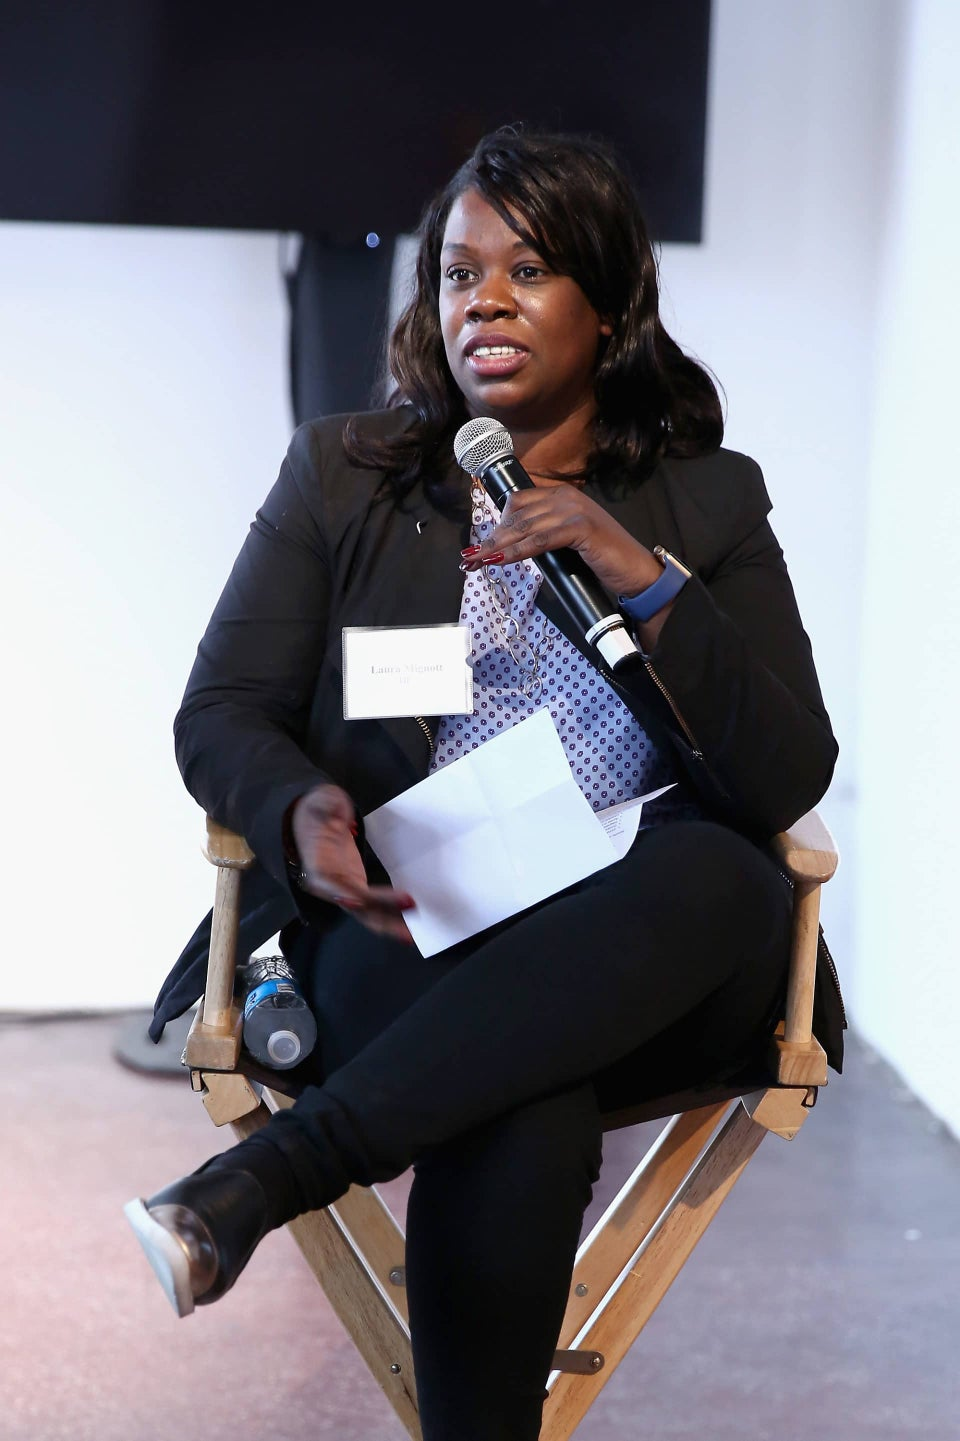 Meet The Woman Responsible For Giving Women Of Color More Visibility On Stages Across America